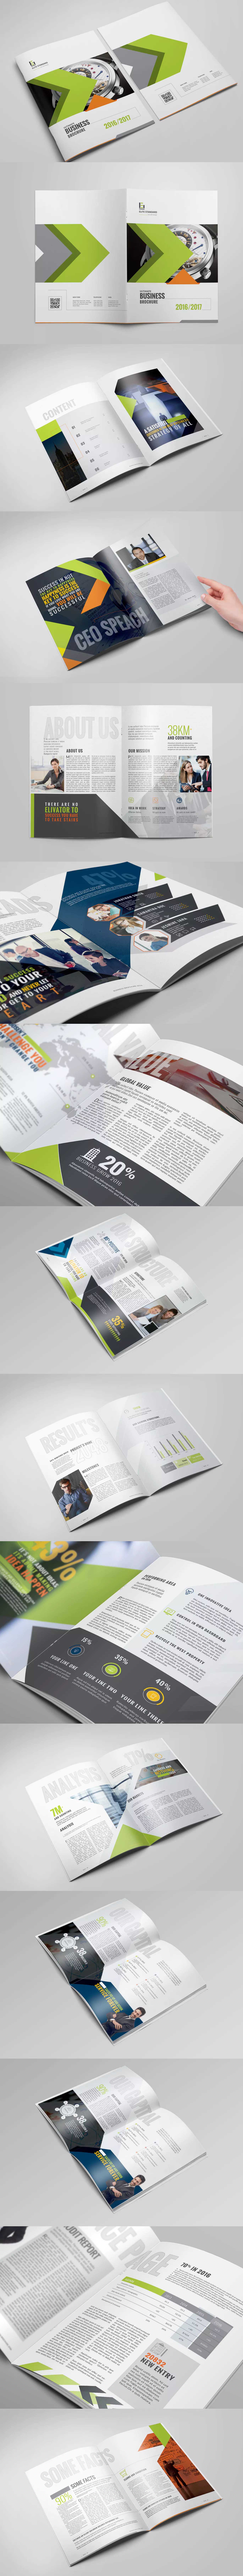 Corporate Brochure Template InDesign INDD - A4 and US Letter Size ...